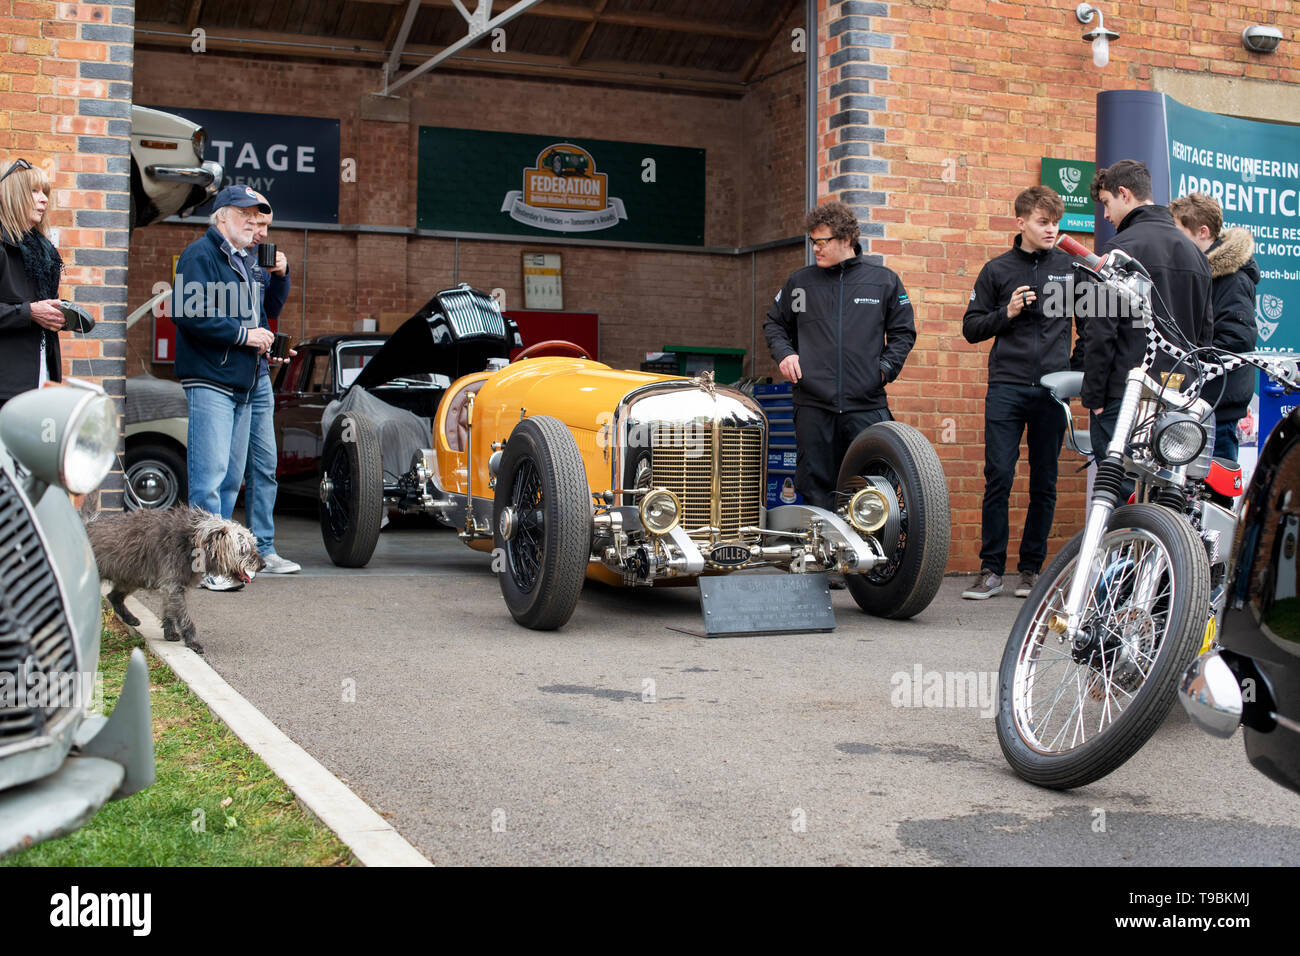 The craftsman car built by lamb engineering outside a garage at Bicester Heritage Centre 'Drive It Day'.  Bicester, Oxfordshire, England. - Stock Image